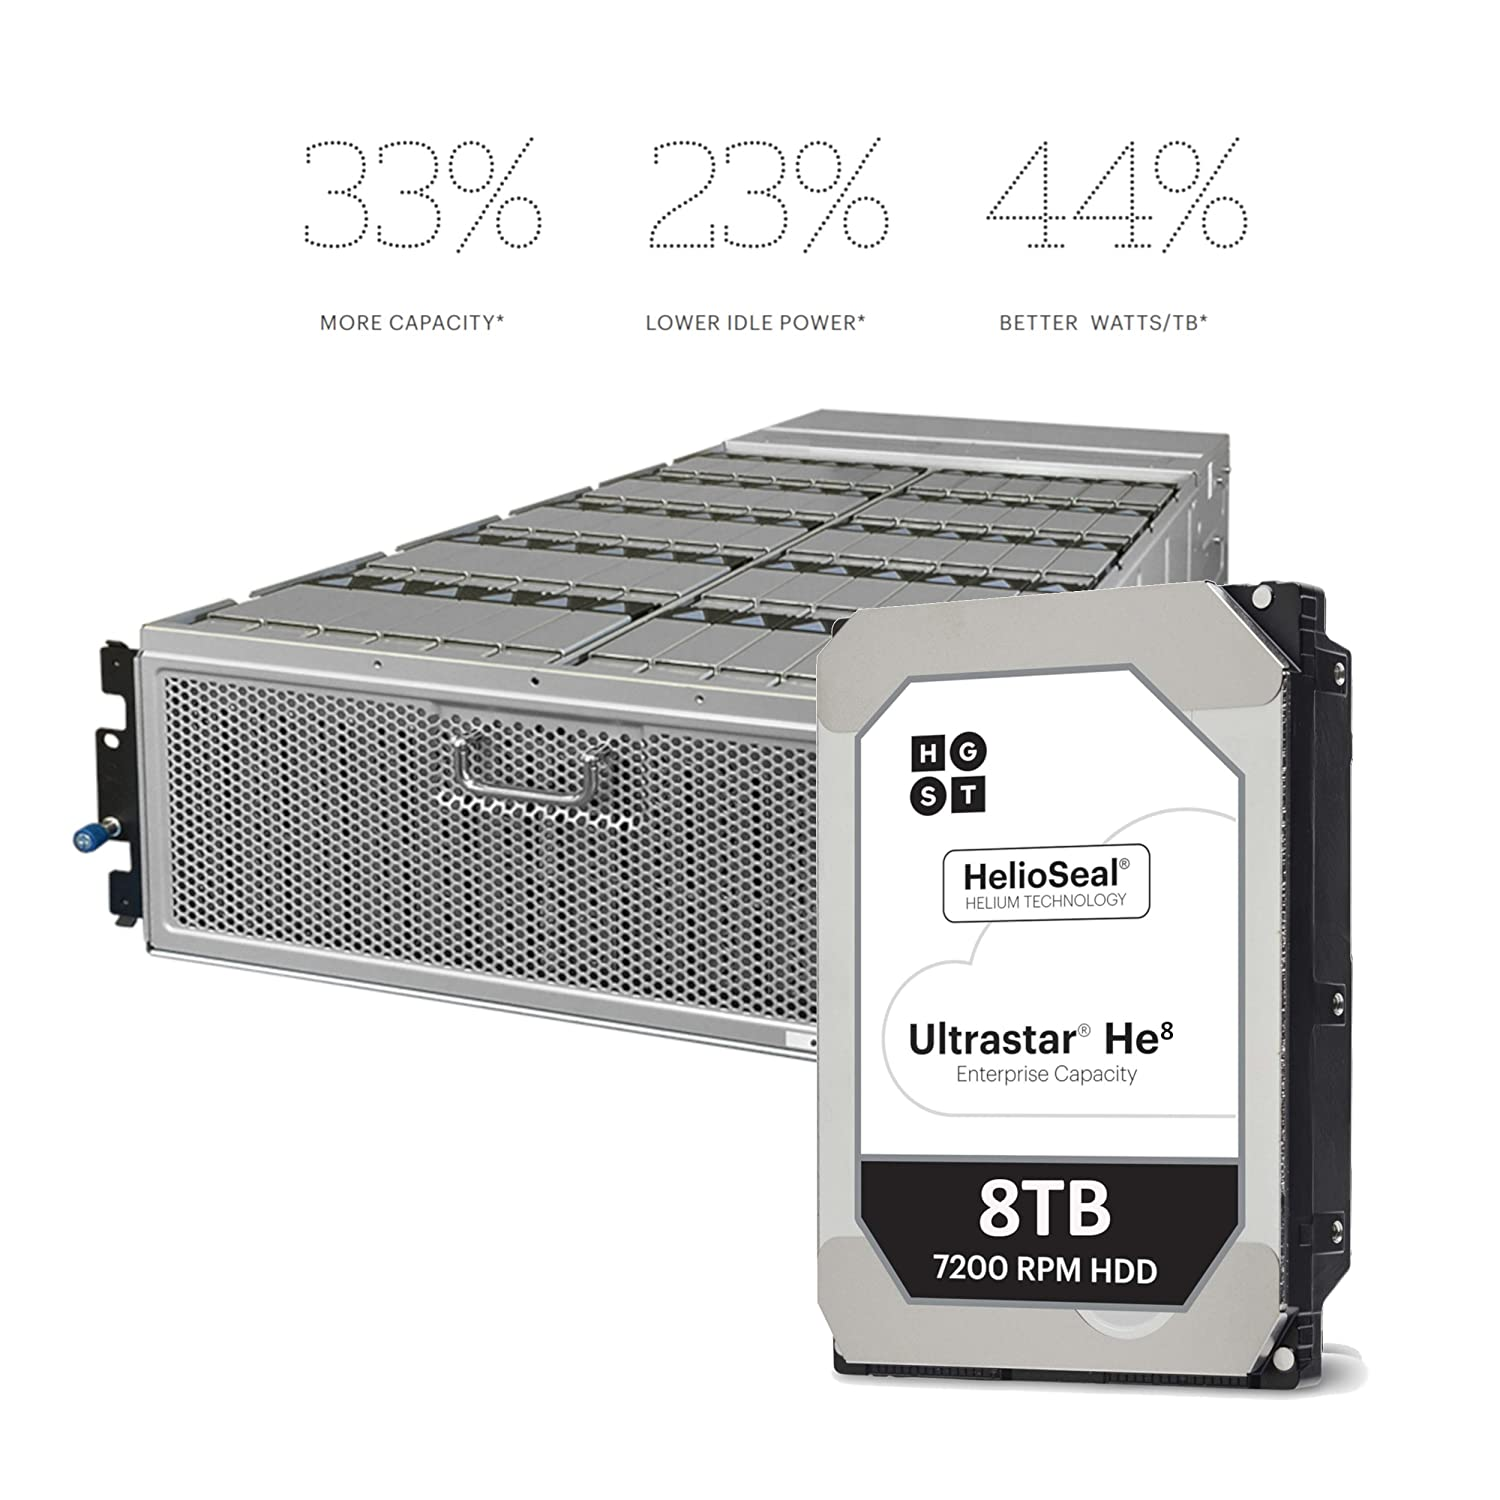 Hgst Ultrastar He8 Huh728080aln600 0f23662 8tb To Make It More Fun We Going Tear Pieces Pretty New 1tb Seagate 7200 Rpm 128mb Cache Sata 60gb S 35 Helium Platform Enterprise Hard Drive Bare